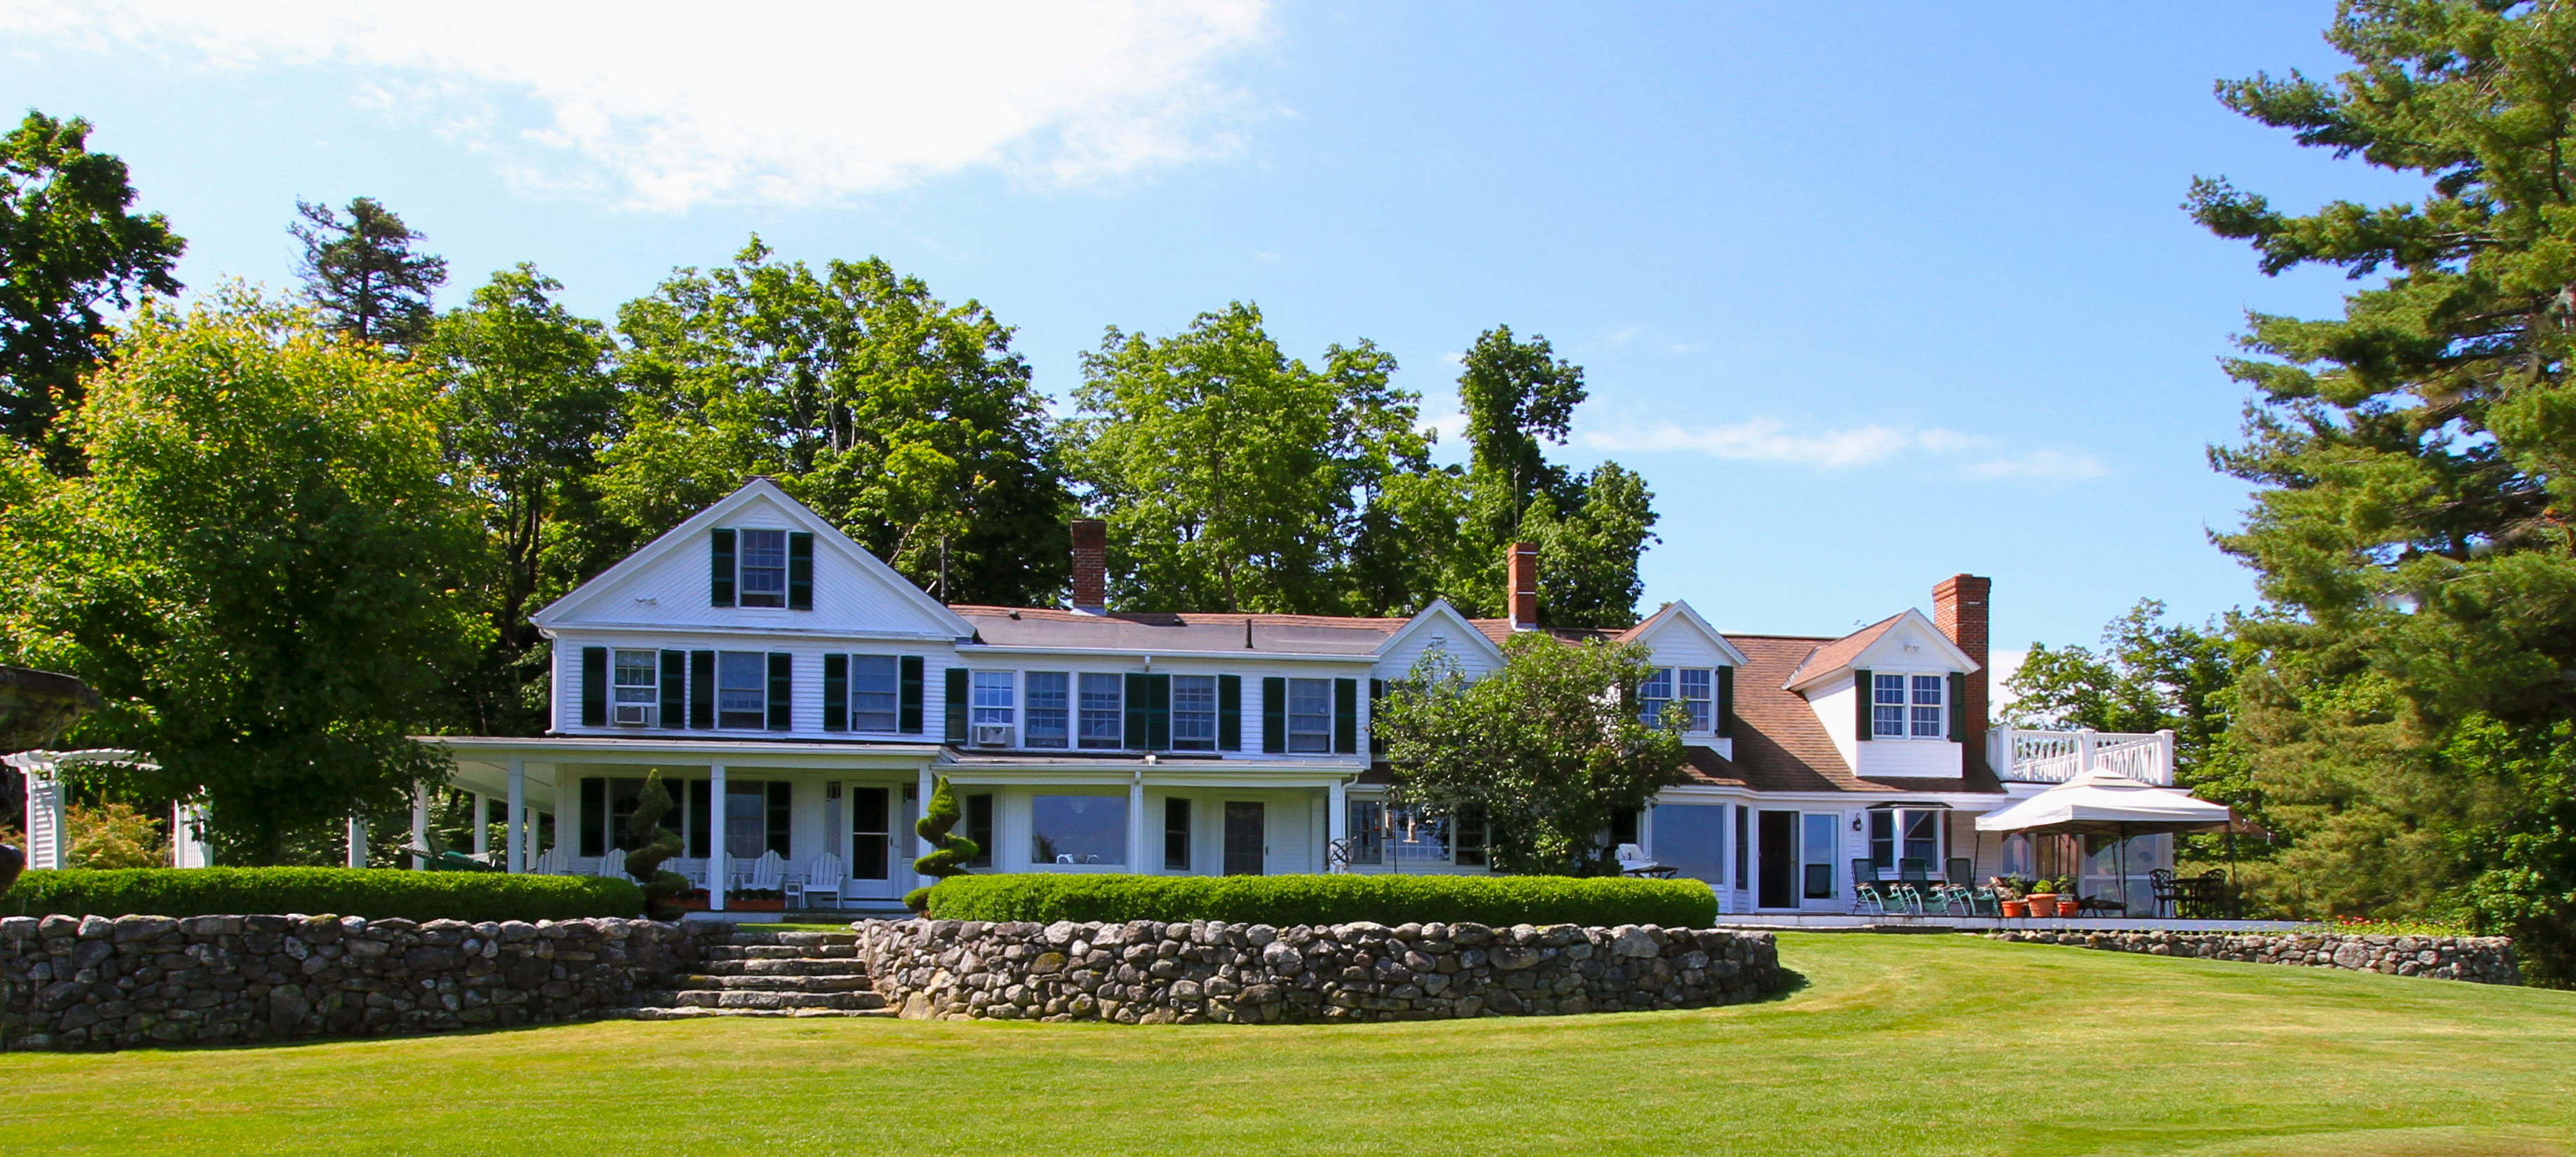 The Maguire House B&B